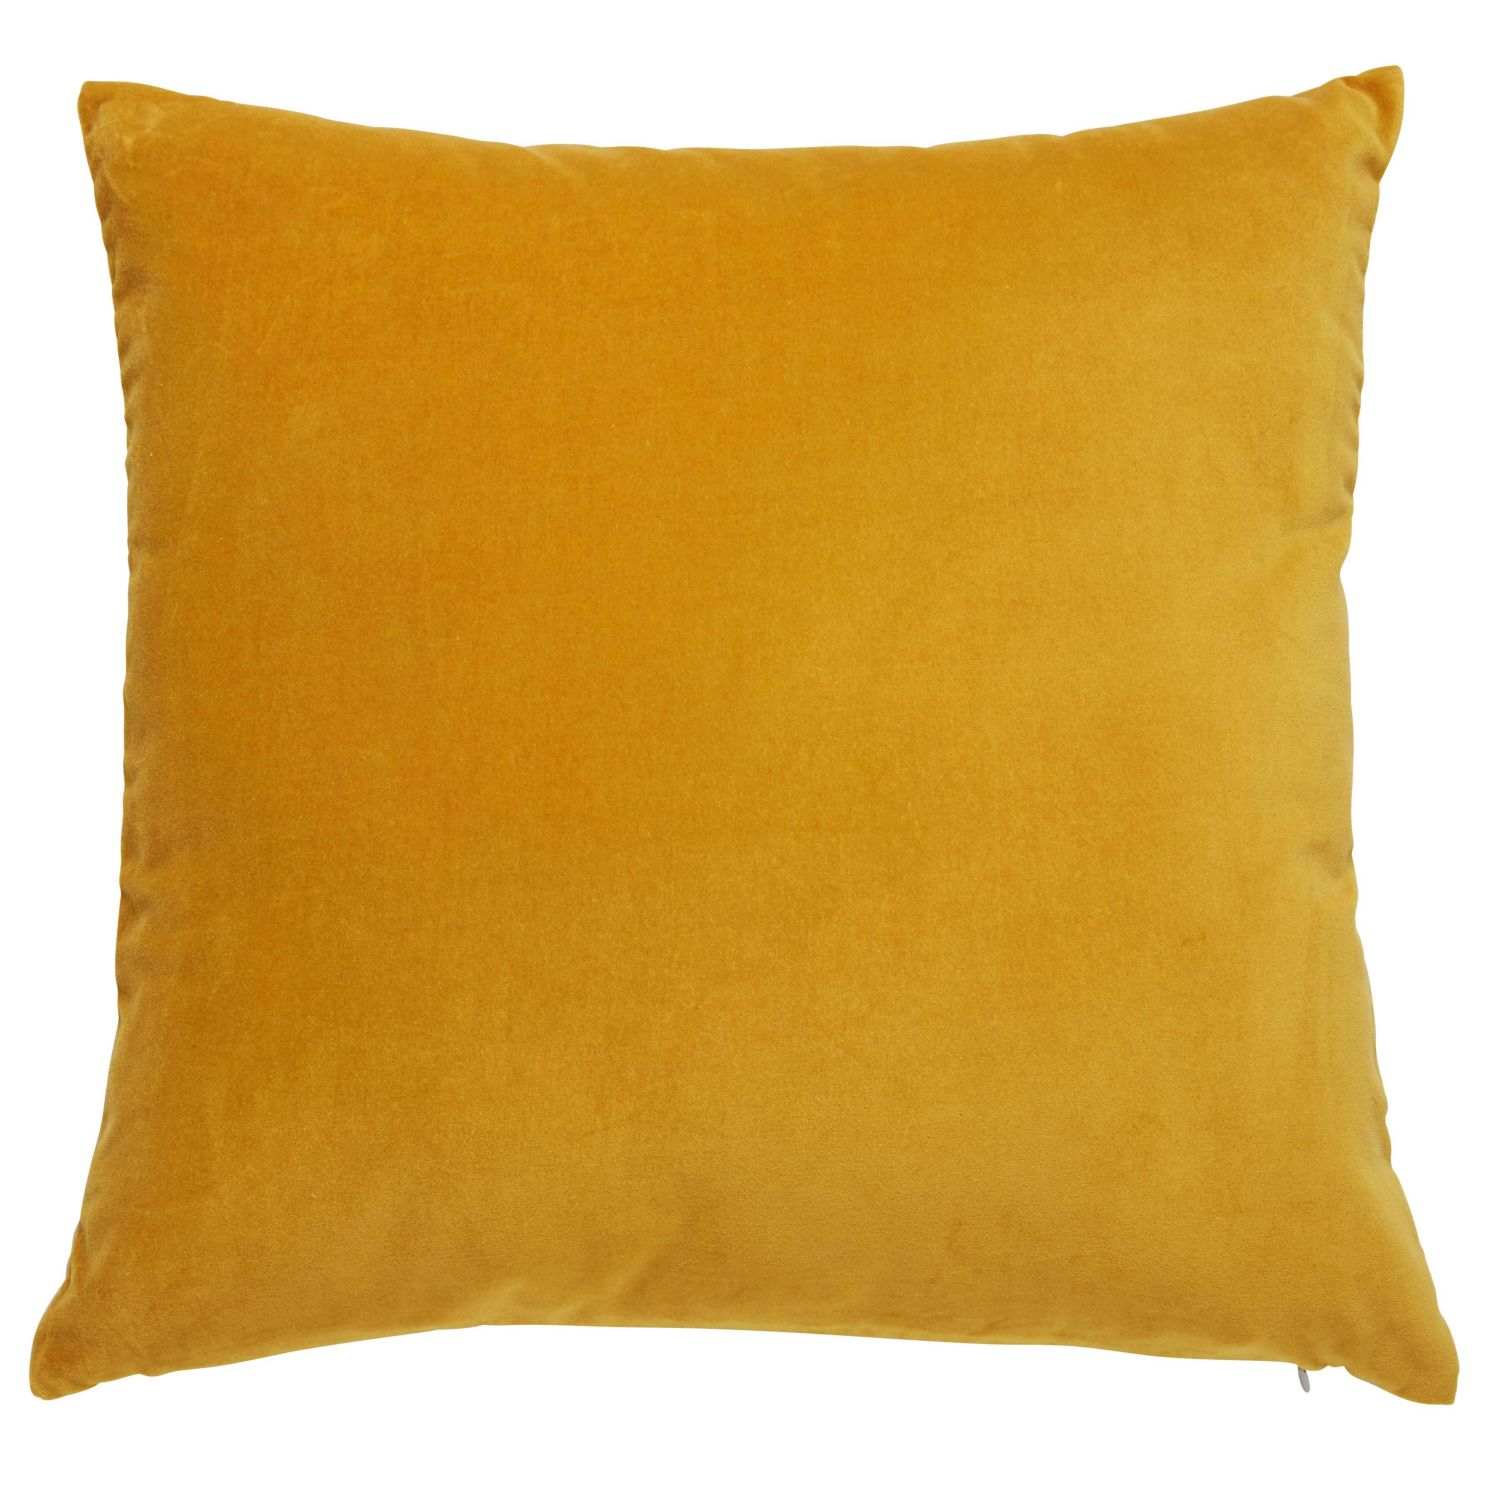 coussin en velours jaune moutarde 45x45cm maisons du monde. Black Bedroom Furniture Sets. Home Design Ideas